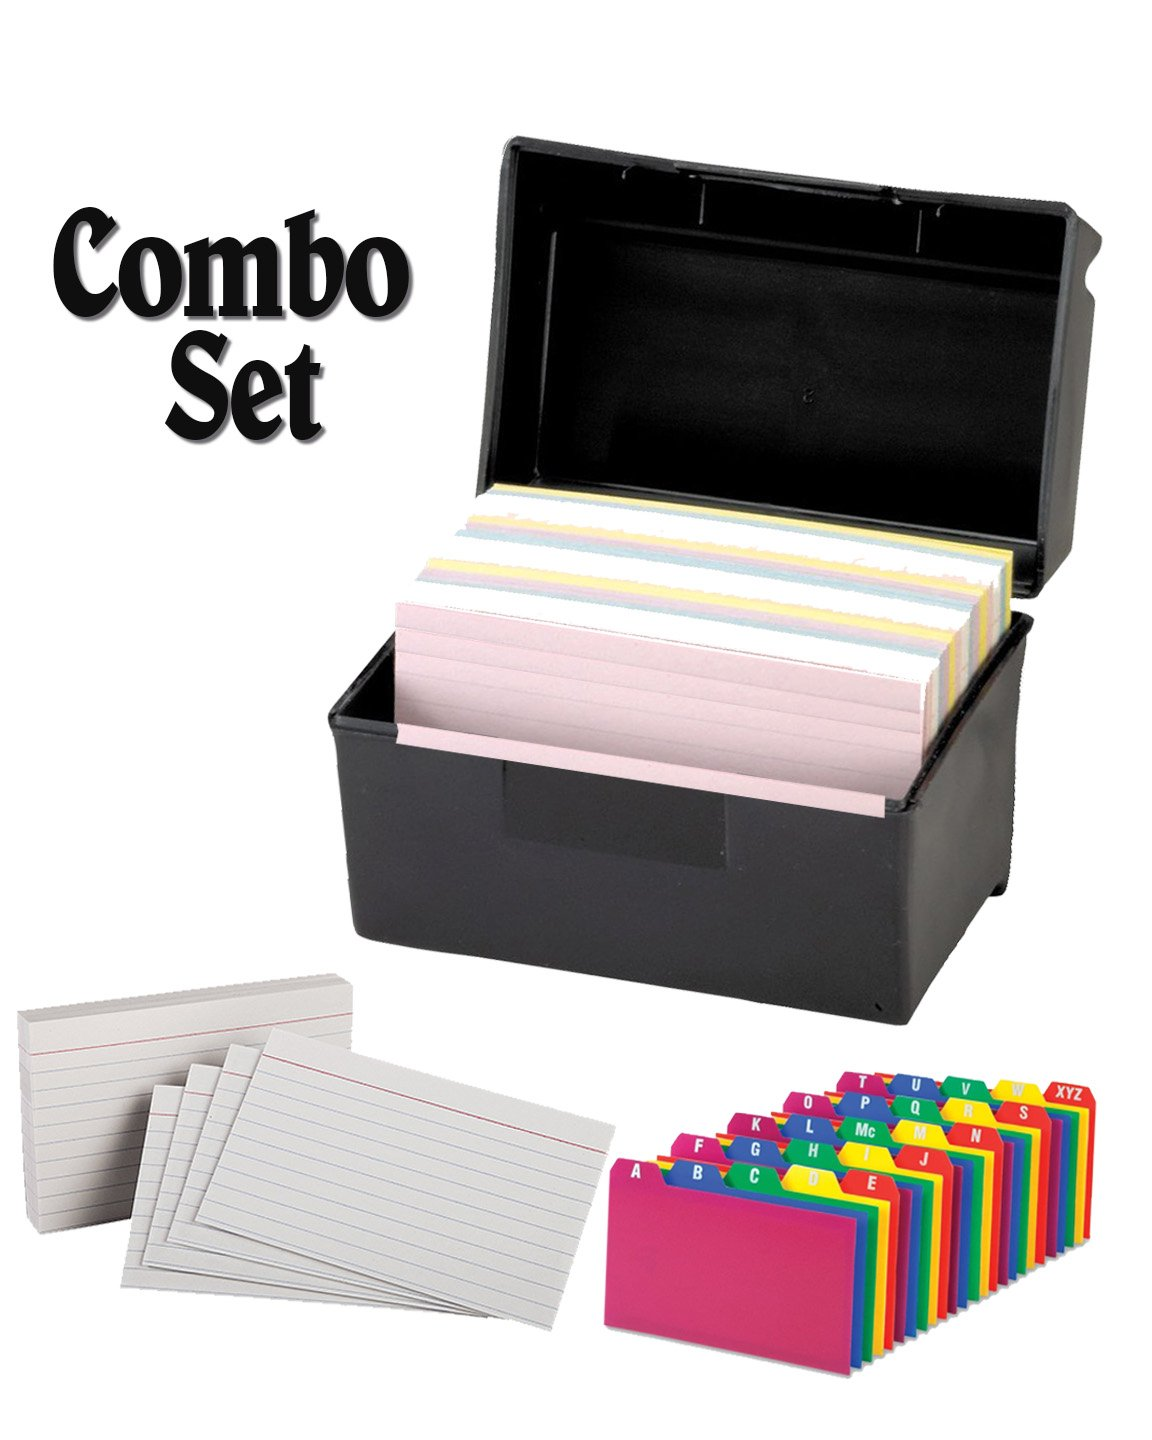 Plastic Index Card Flip Top File Box Holds 300 3 x 5 Cards, Matte Black, with Poly Card Guides, A-Z, 3 x 5 -inch, and Heavy Weight Index Cards, 3'' x 5'', Ruled, White, 100/Pack (3x5 inch)